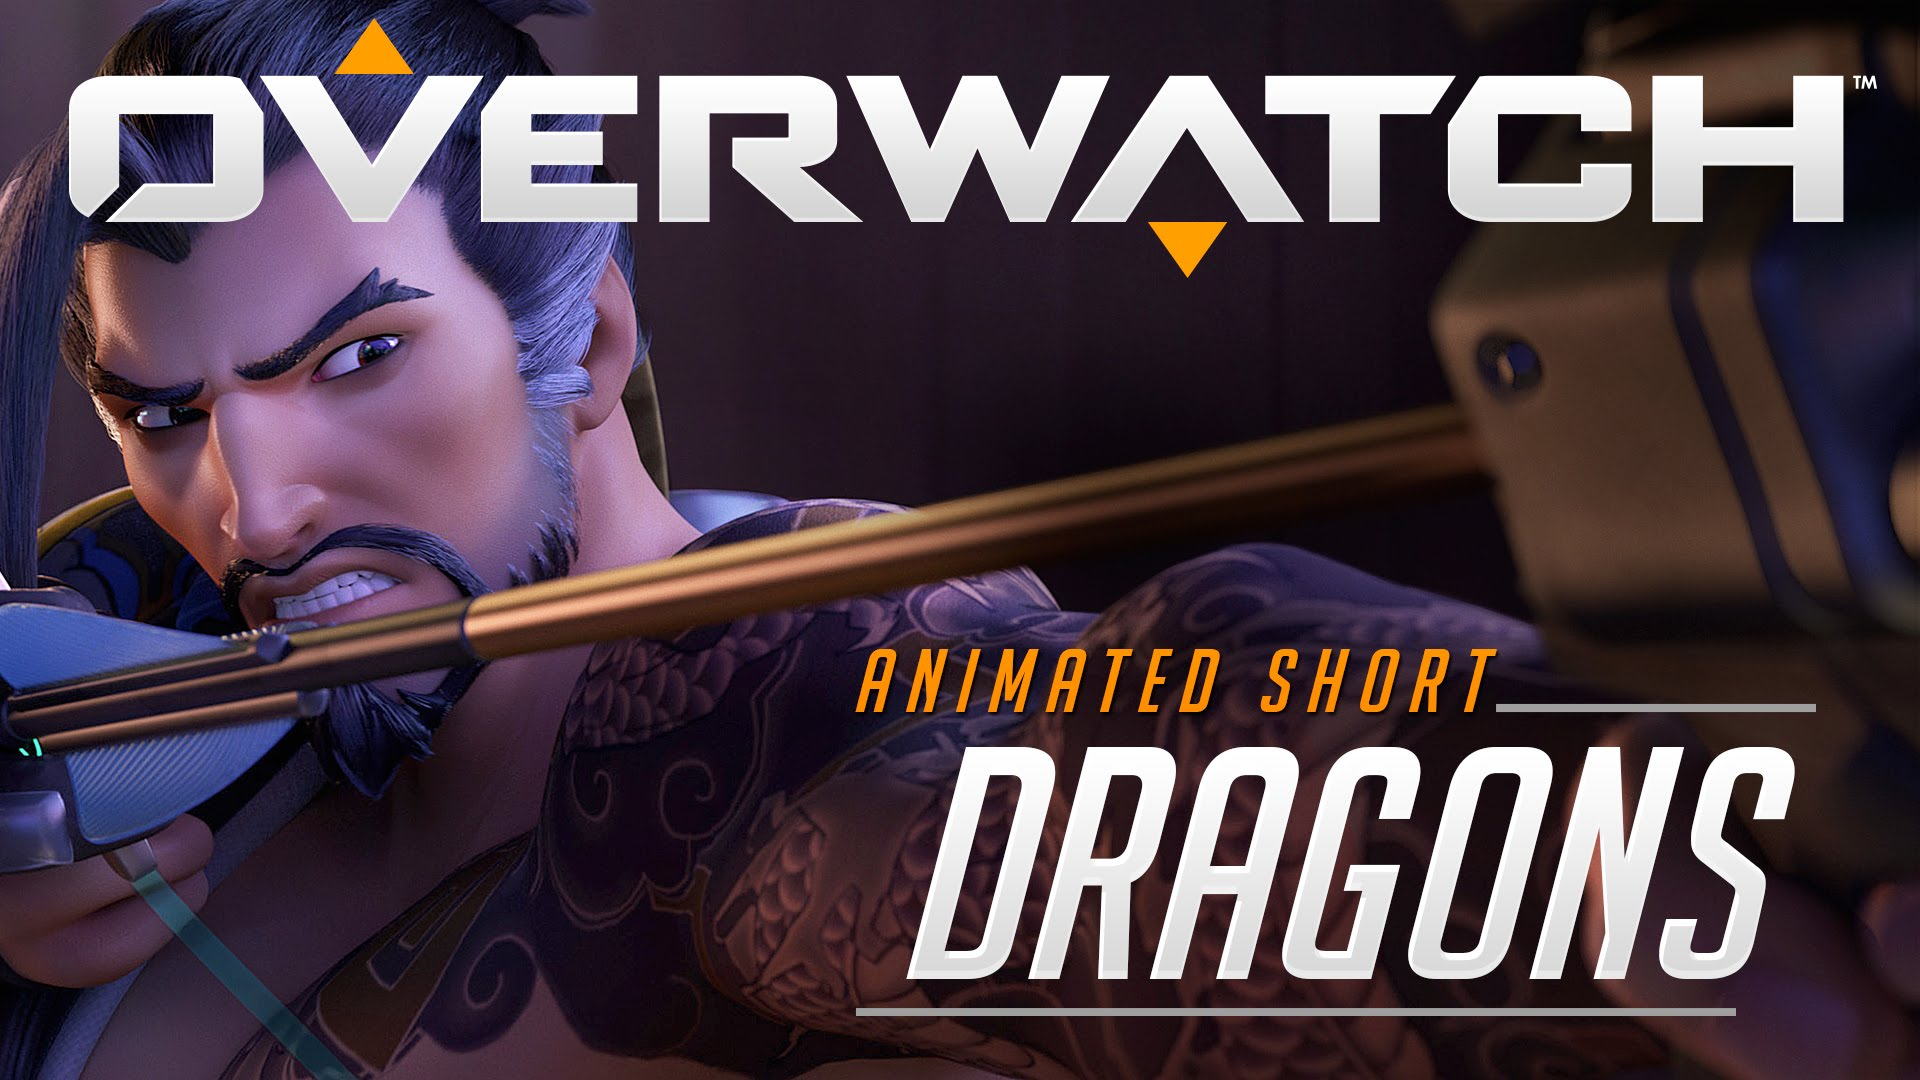 Nuevo corto animado de Overwatch: DRAGONS